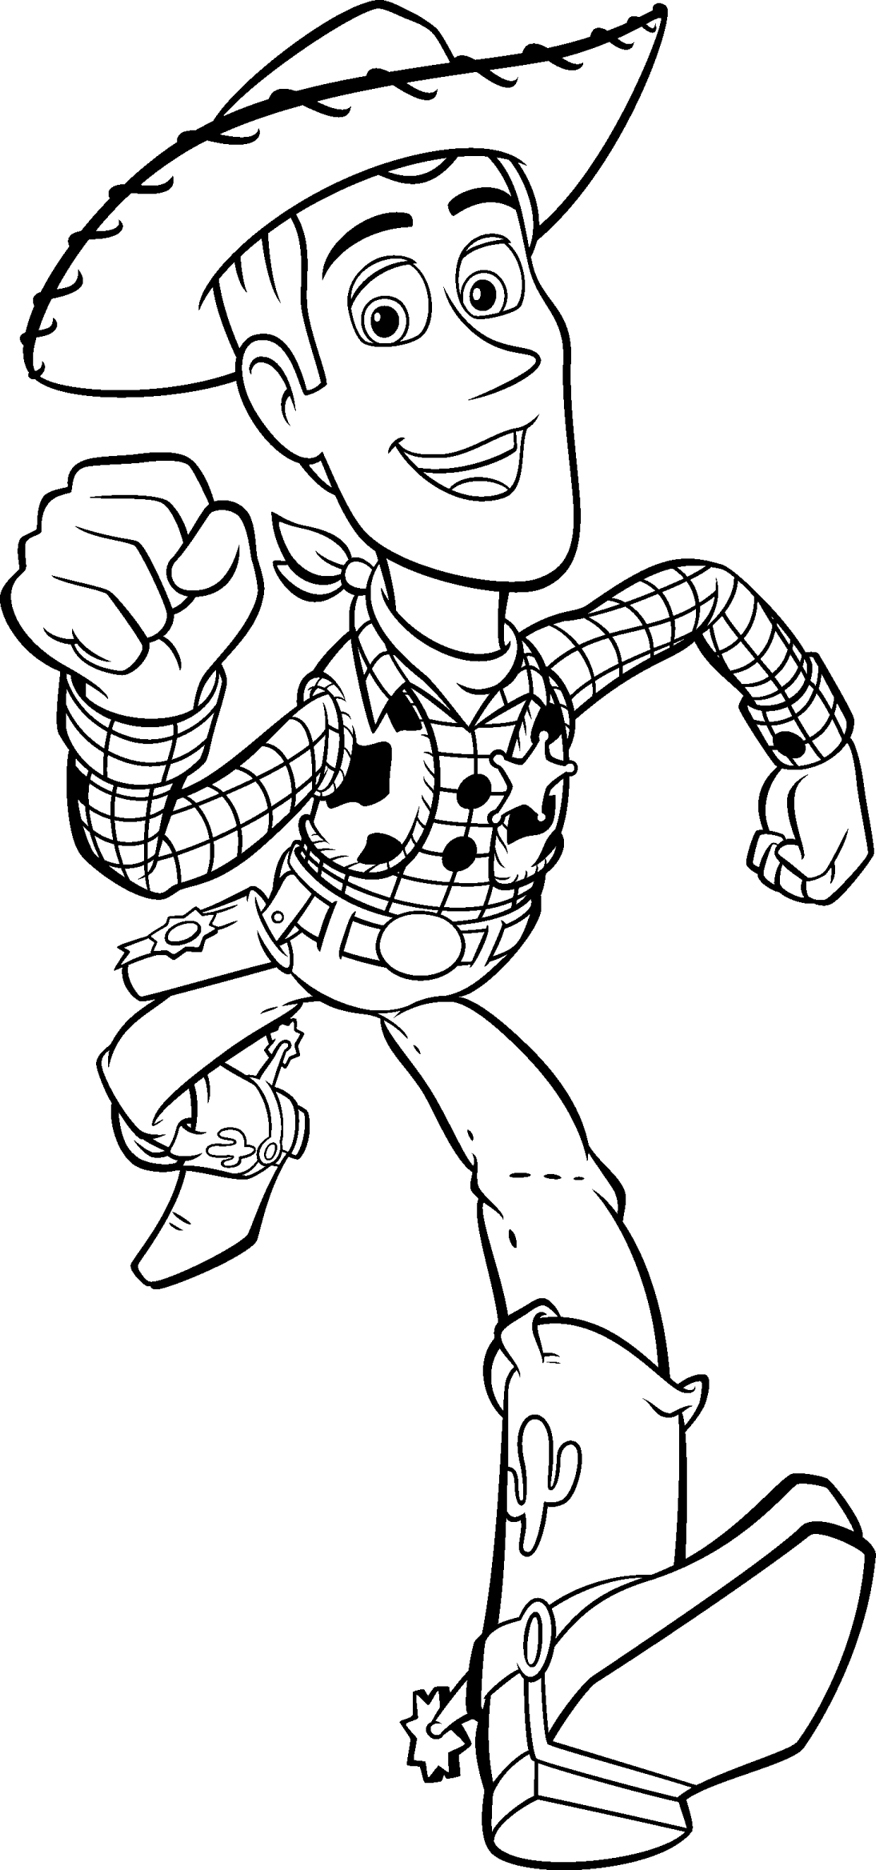 Free Printable Toy Story 4 Jessie PDF Coloring Pages | 1870x876